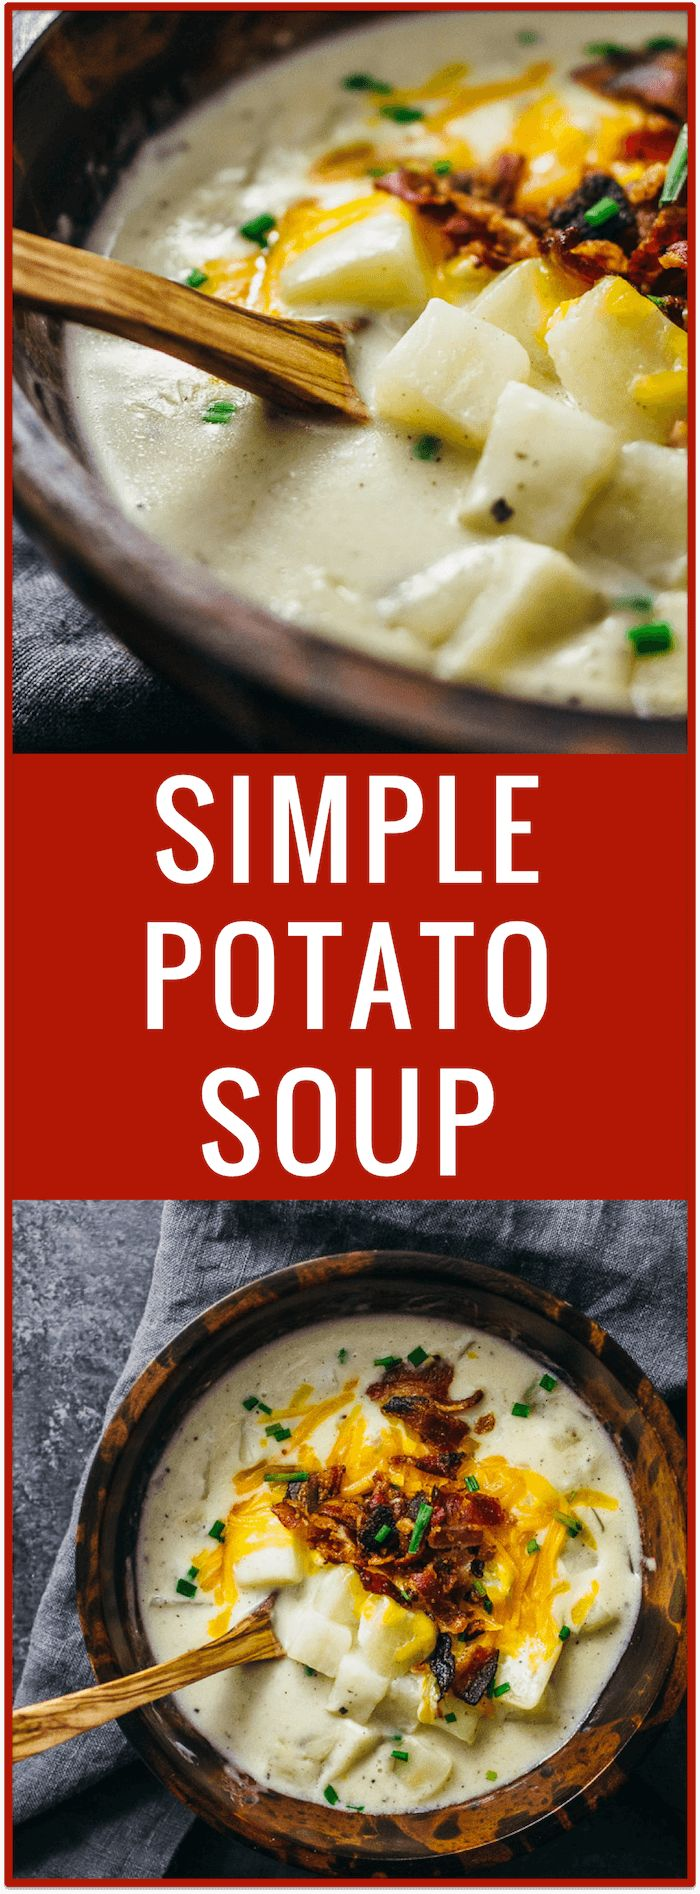 Creamy potato soup with bacon and cheddar | Cheesy potato soup | Simple potato soup | Comfort food | One pot dinner | Easy recipe via @savory_tooth